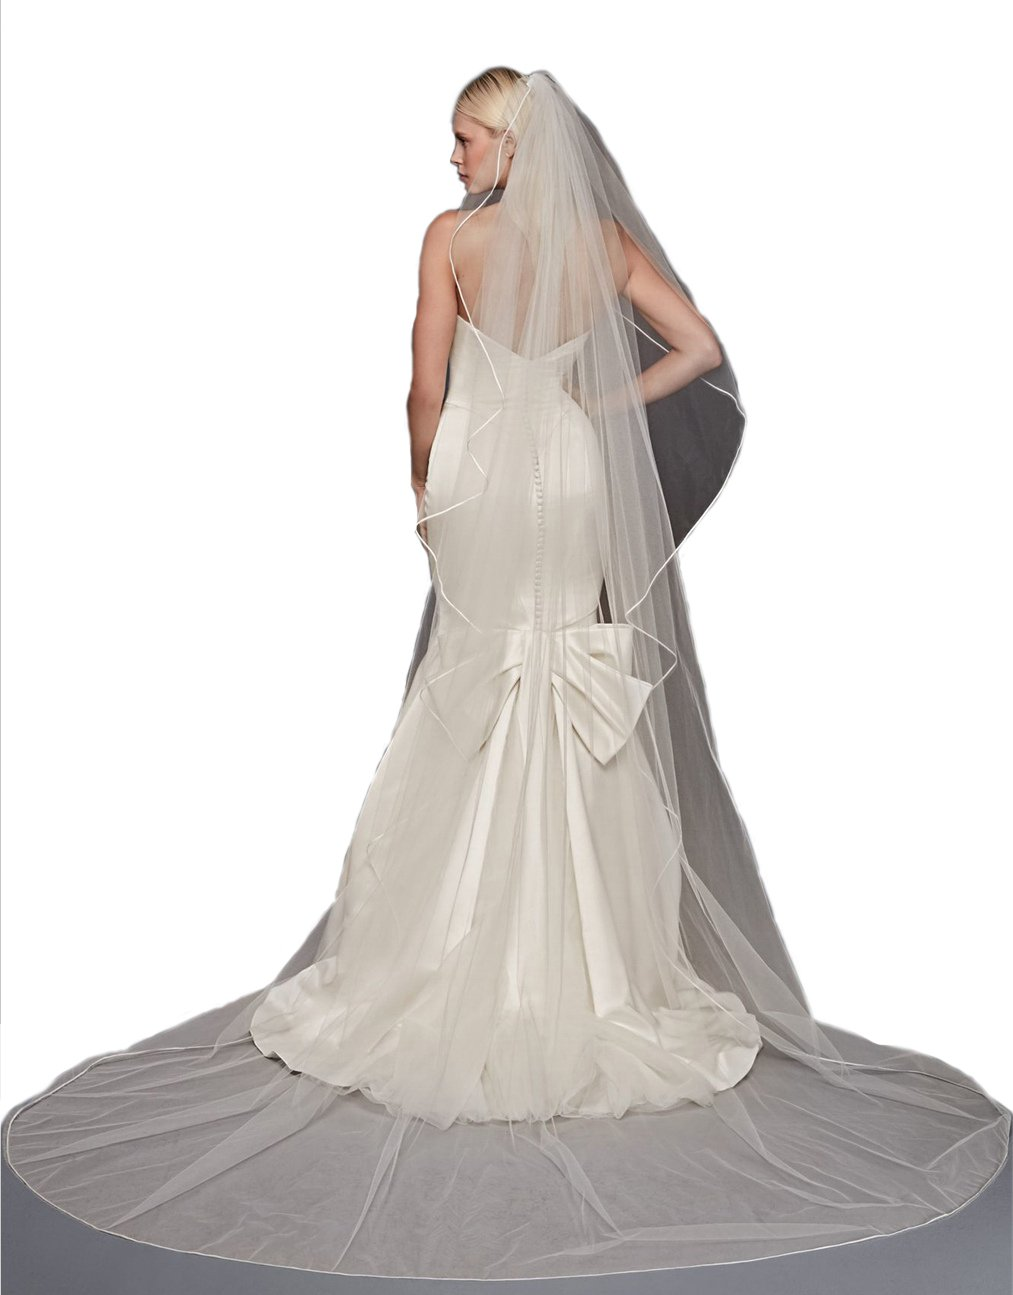 Top-Sexy Ivory 1 Tier 3M Cathedral Truly Zac Posen Pencil Italy Satin Edge Wedding Veil 26 by Top-Sexy